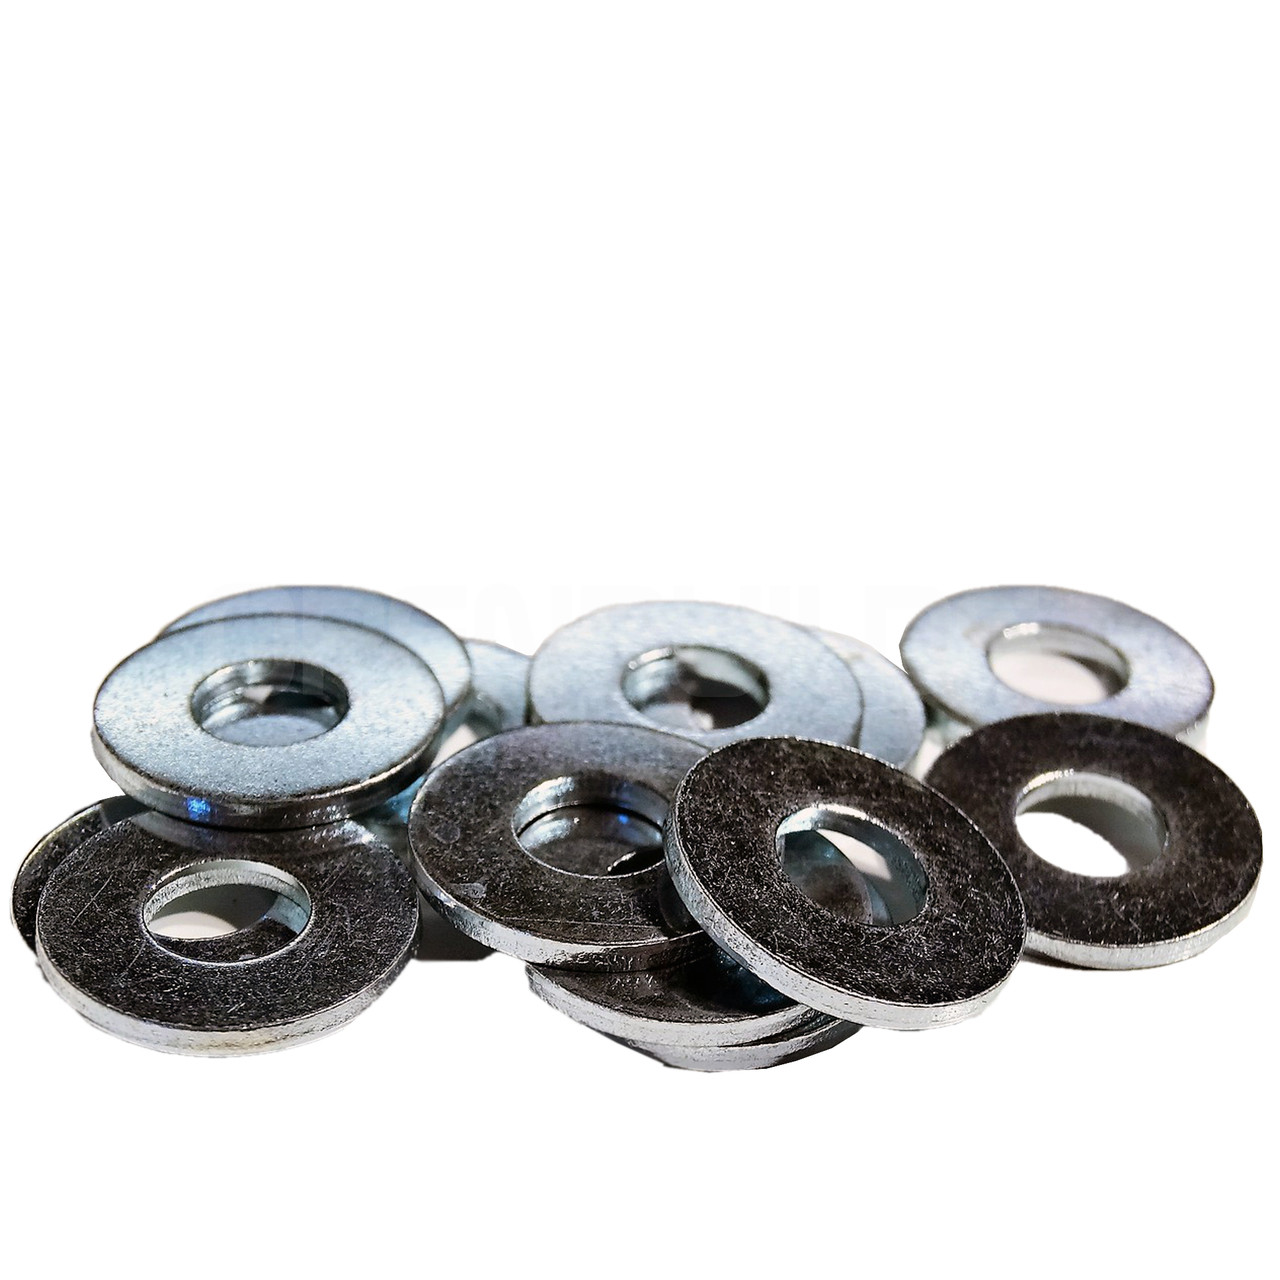 Flat Washer 1 4 Screw Size Openbuilds Part Store